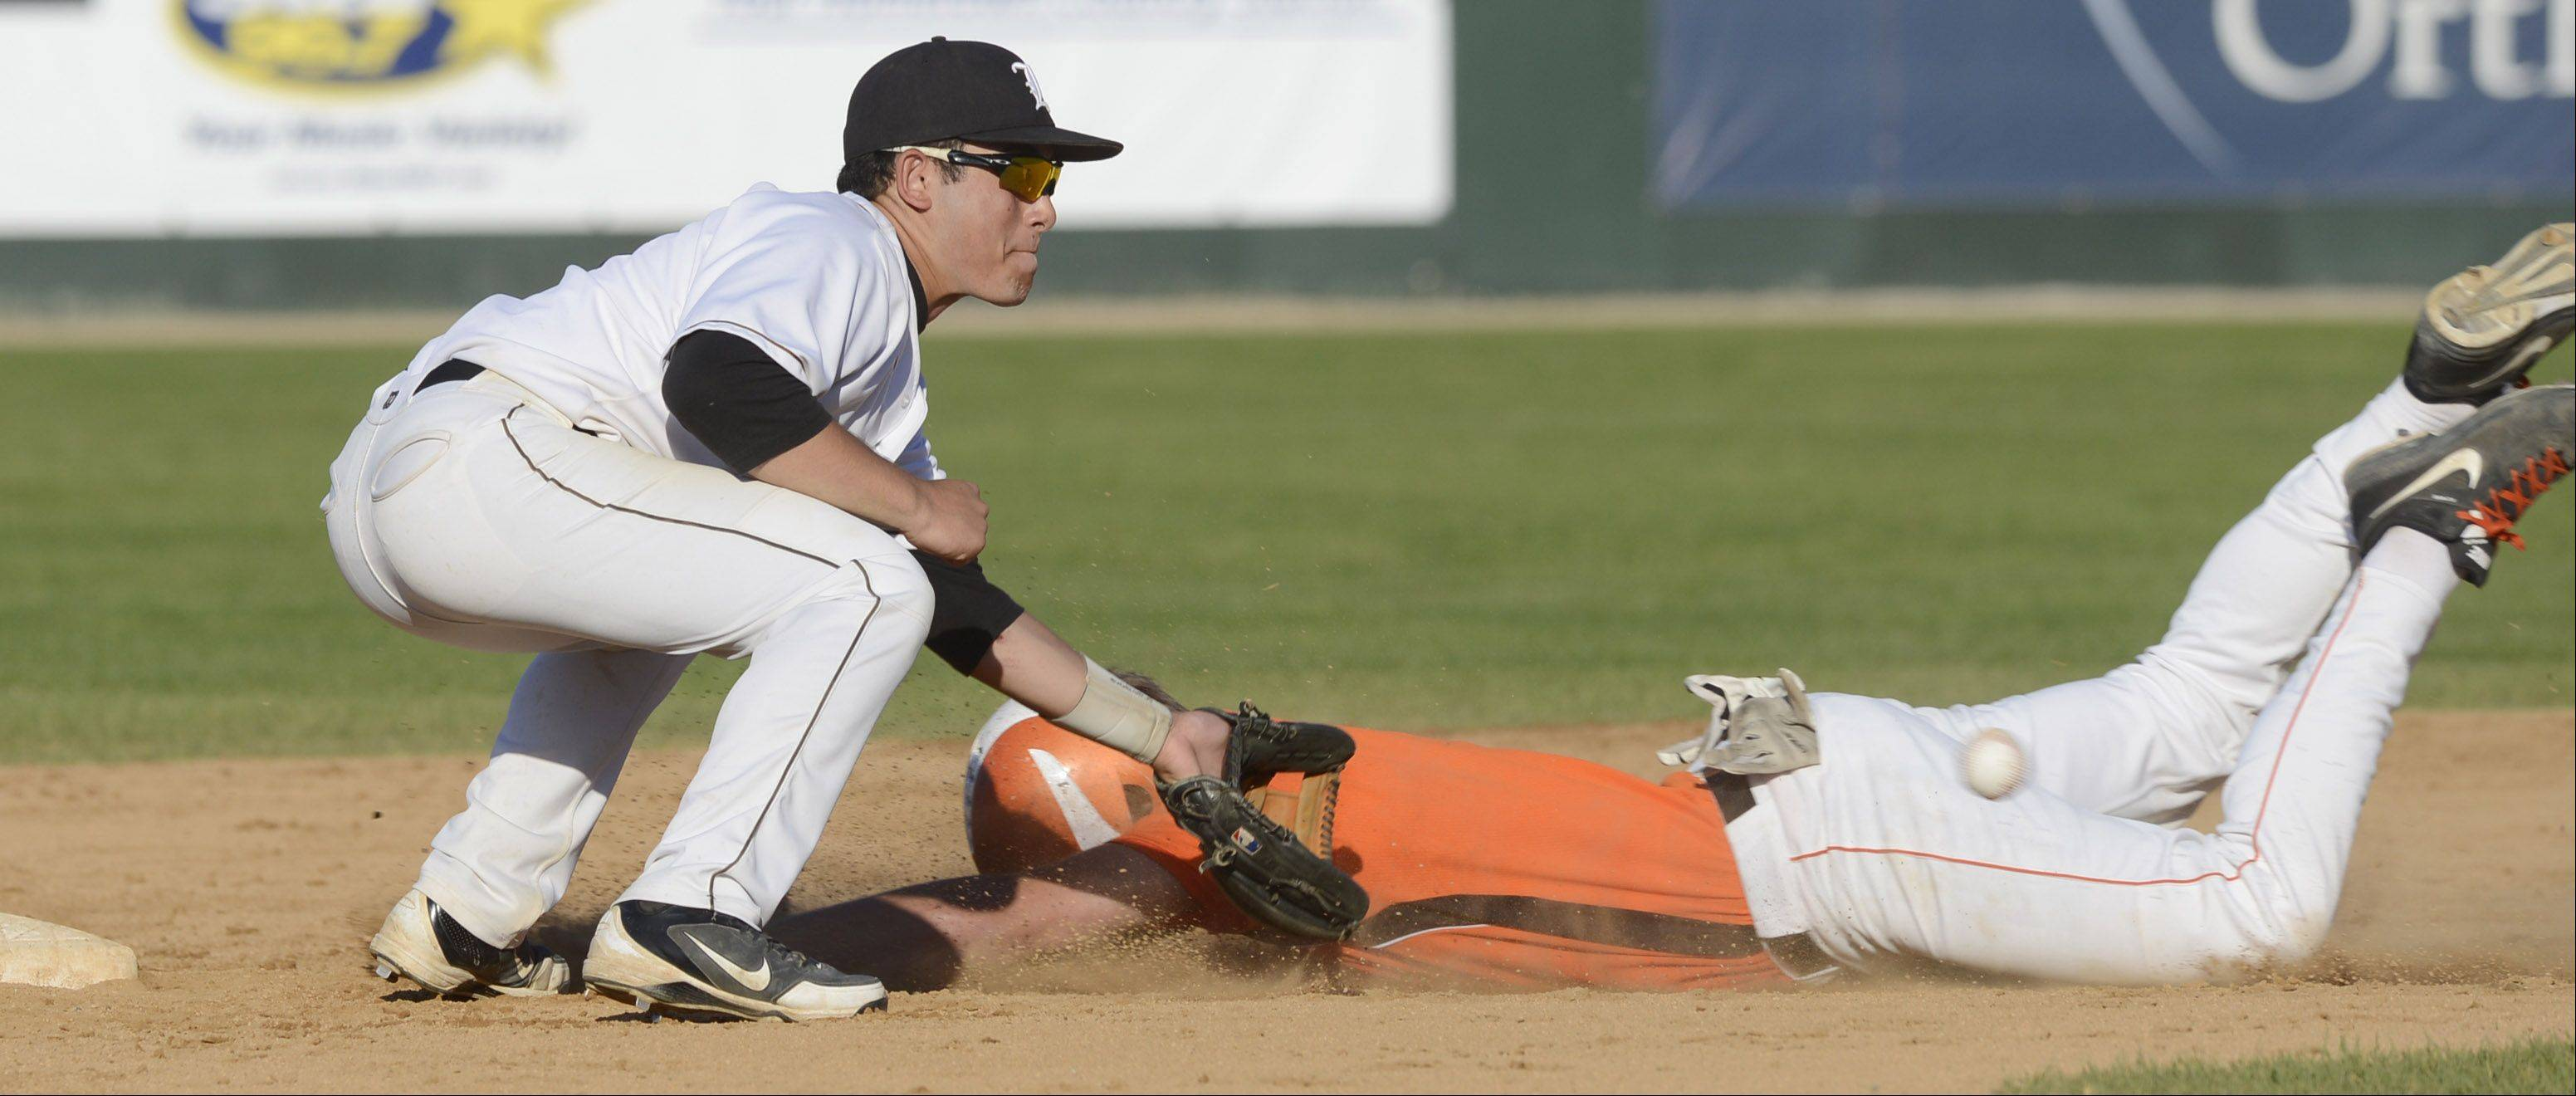 St. Charles East's Erik Anderson steals second base as Libertyville's Noah Greenberg applies the tag in the fourth inning of the Class 4A state baseball semifinals at Silver Cross Field in Joliet Friday.